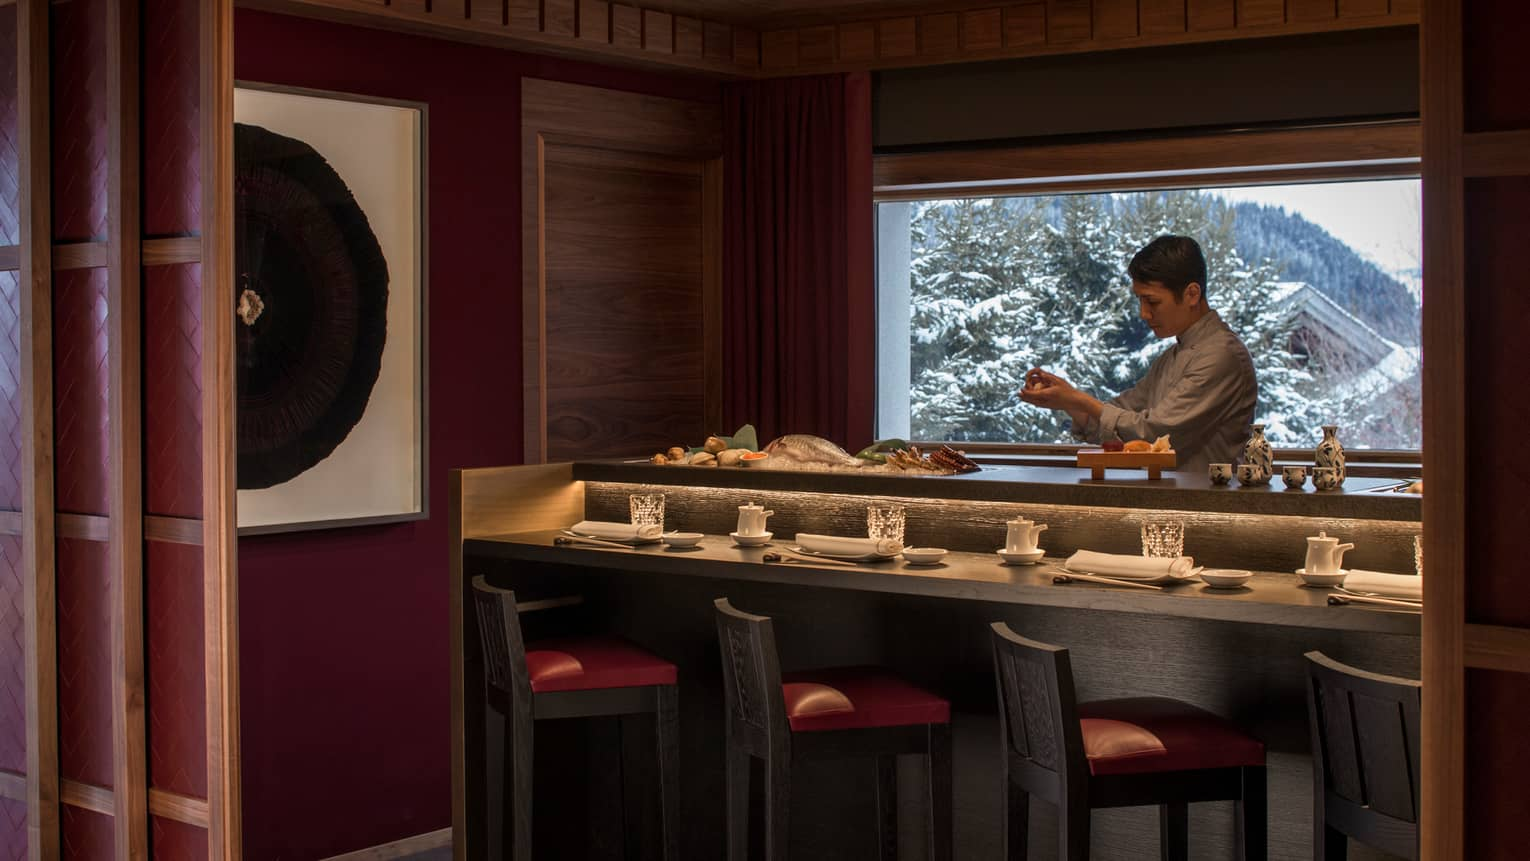 Kaito sushi chef at small bar with fresh whole fish, seafood, window with winter mountain views